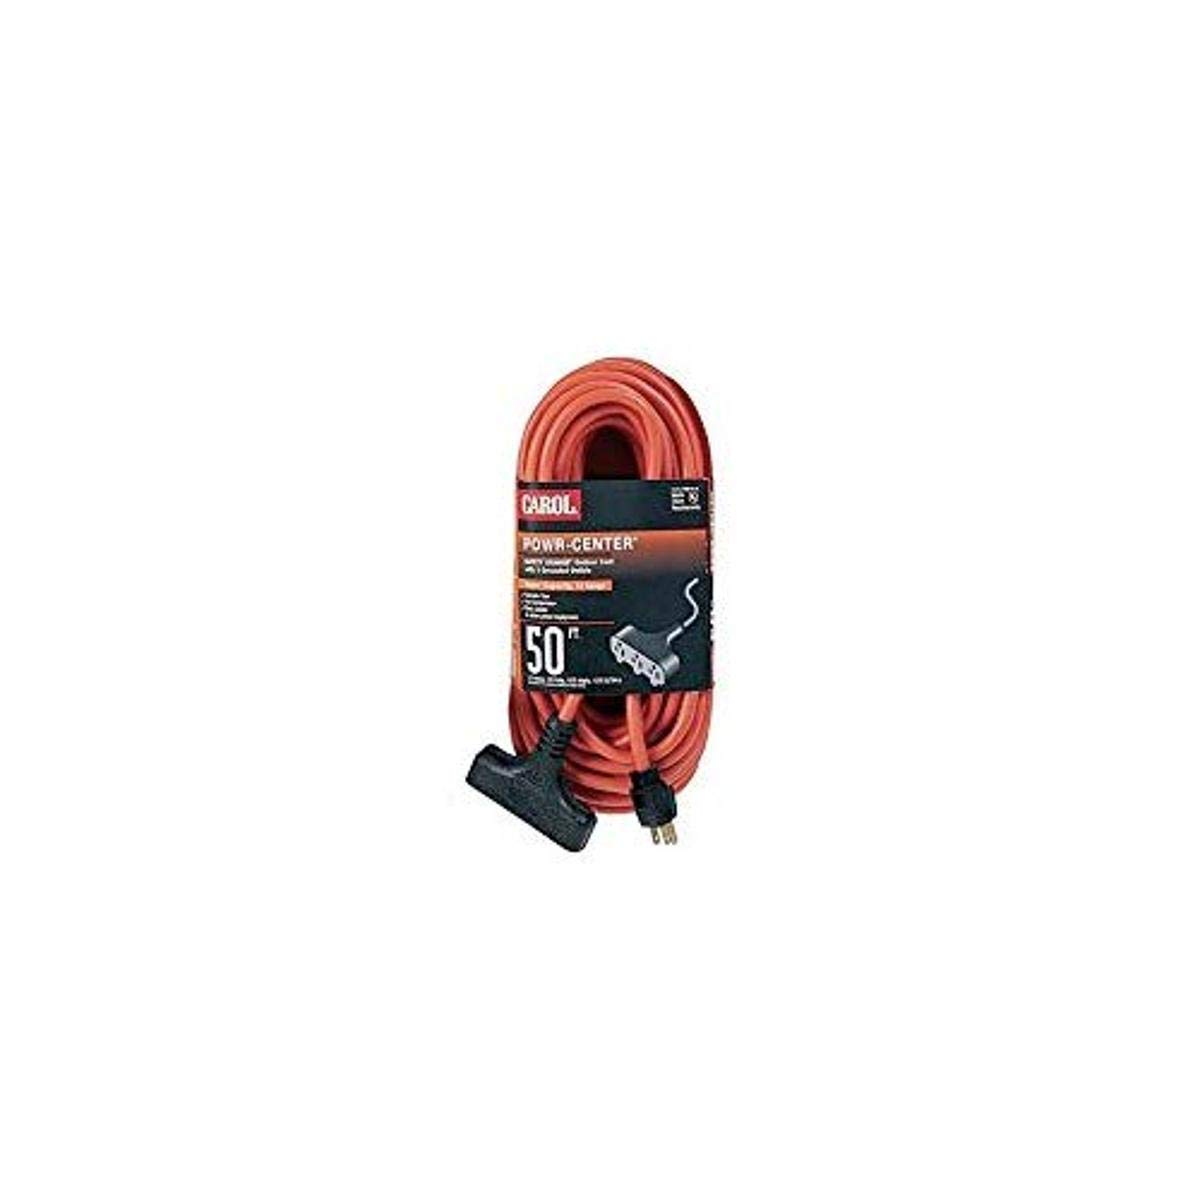 discount 3-Outlet Outdoor Powr-Center Extension AWG Cord 3-Conductor 14 2021 model